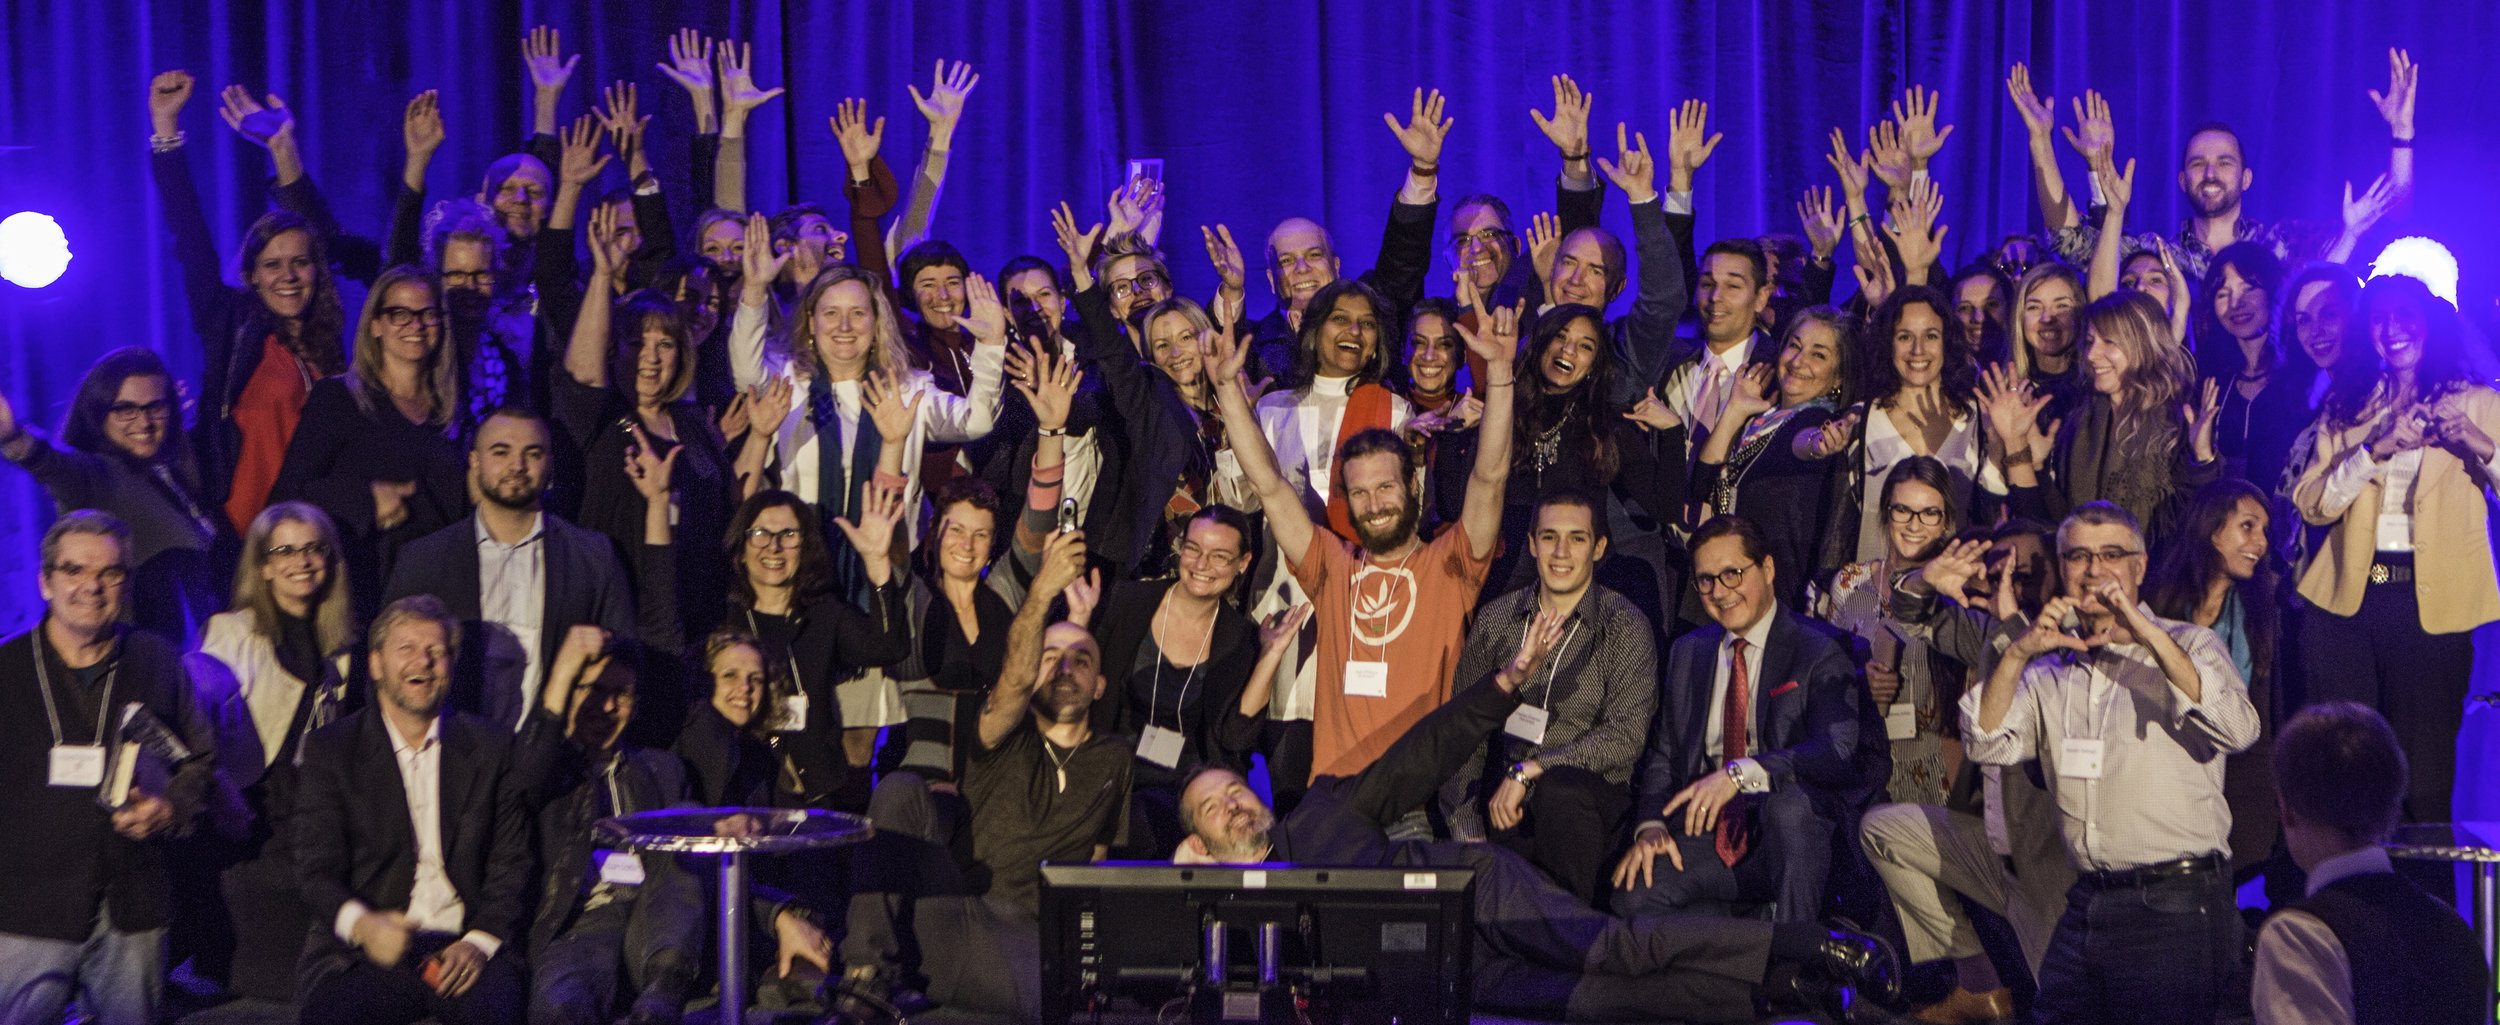 Global Summit for Conscious Leadership 2018 - March 14th-15th 2018 - Montreal